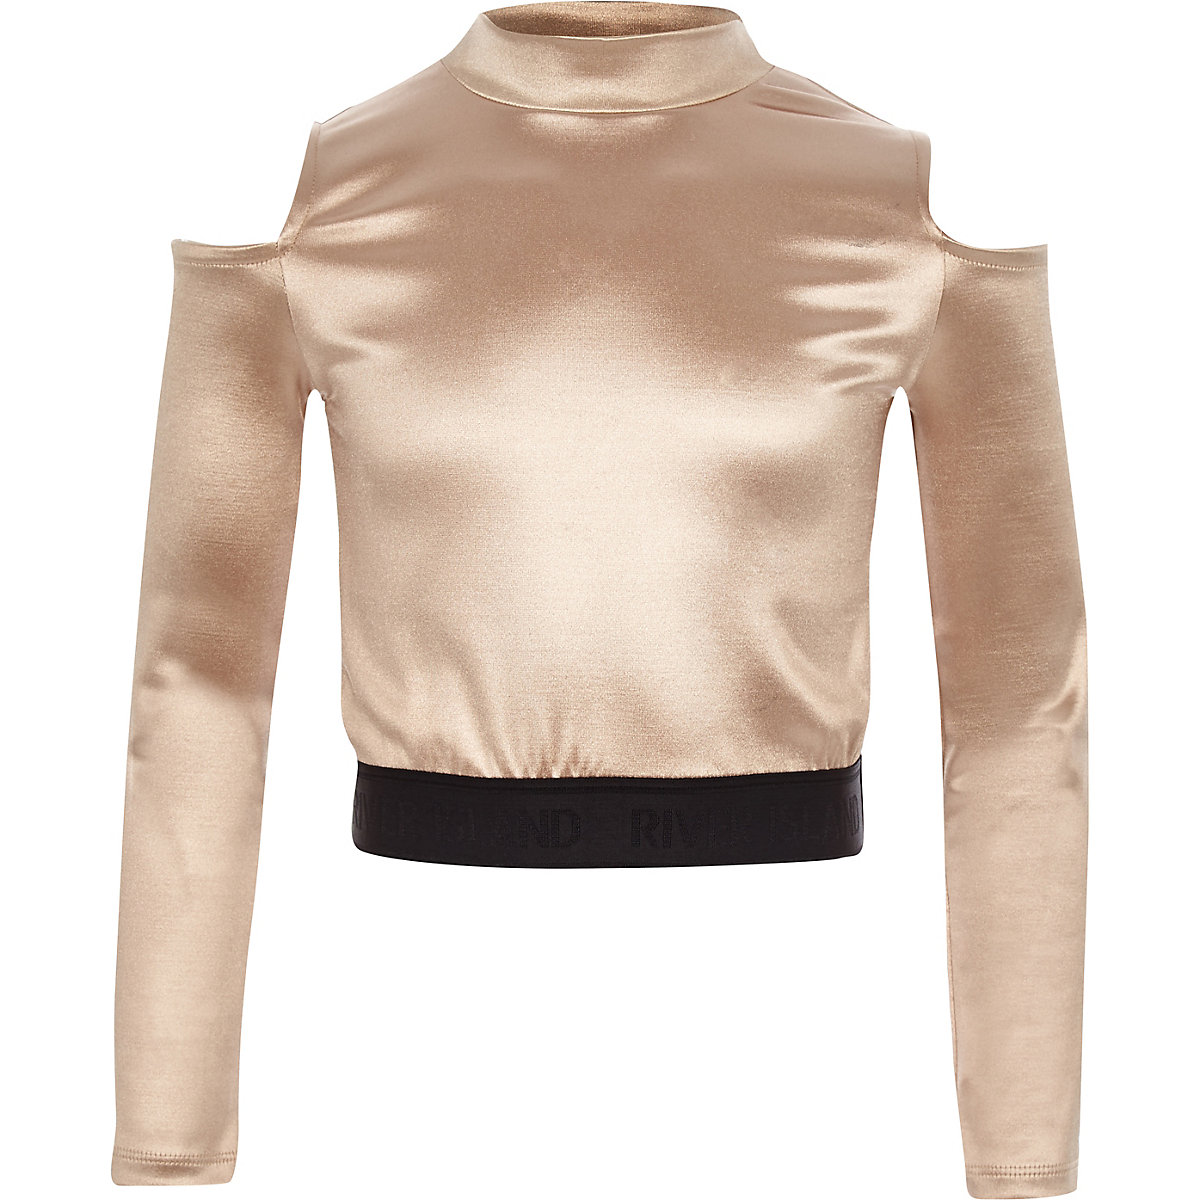 Girls RI Active pink cold shoulder disco top